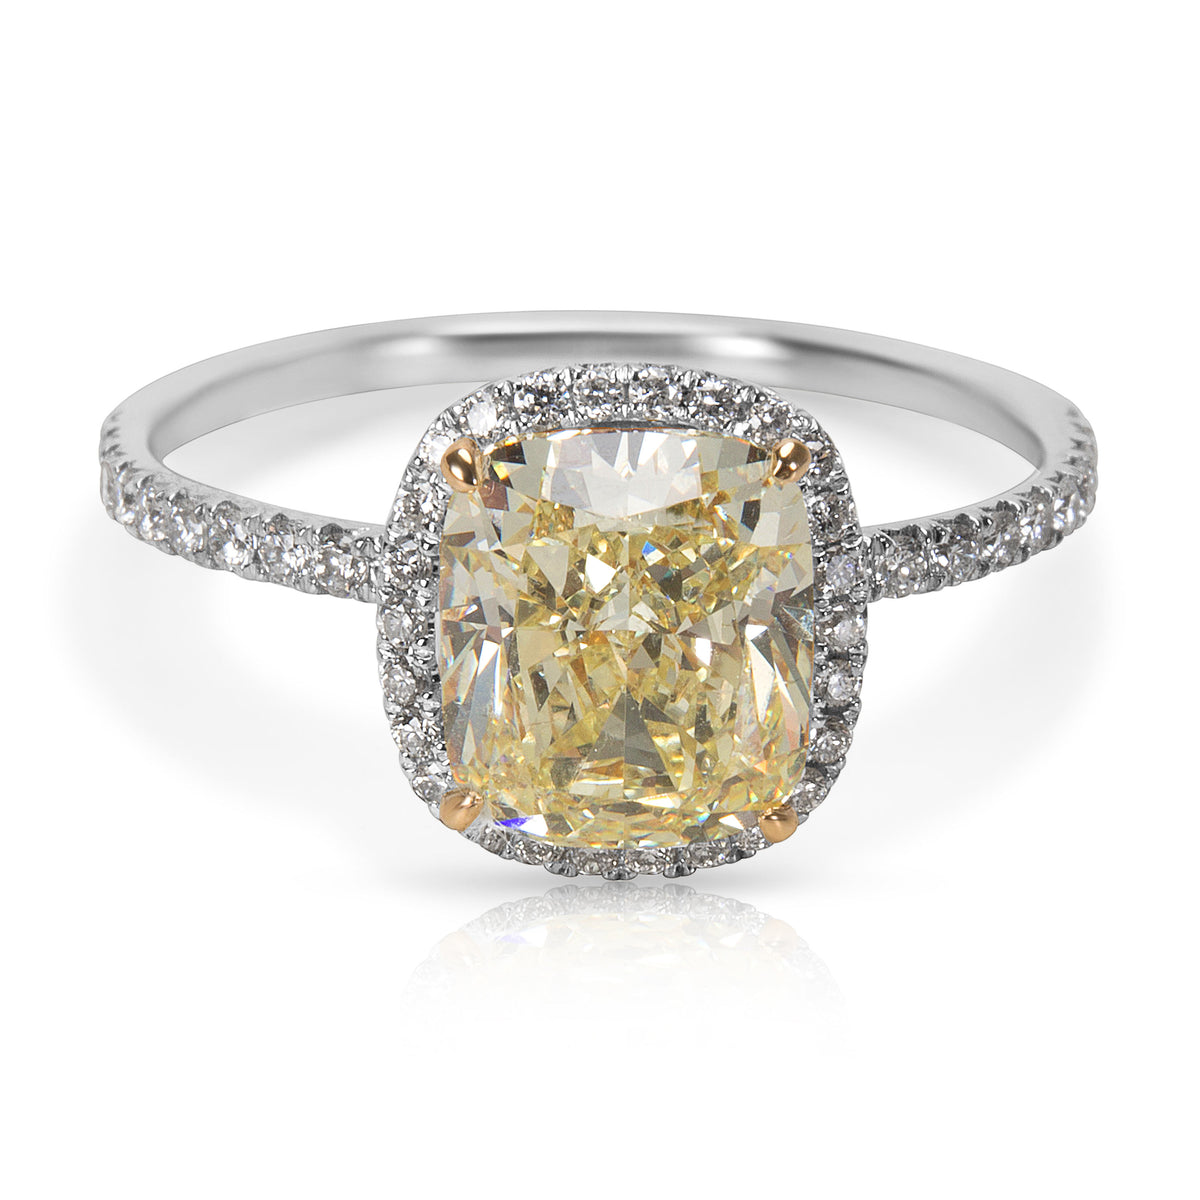 GIA Certified Fancy Light Yellow Diamond Engagement Ring (2.15 ct FY/SI1)